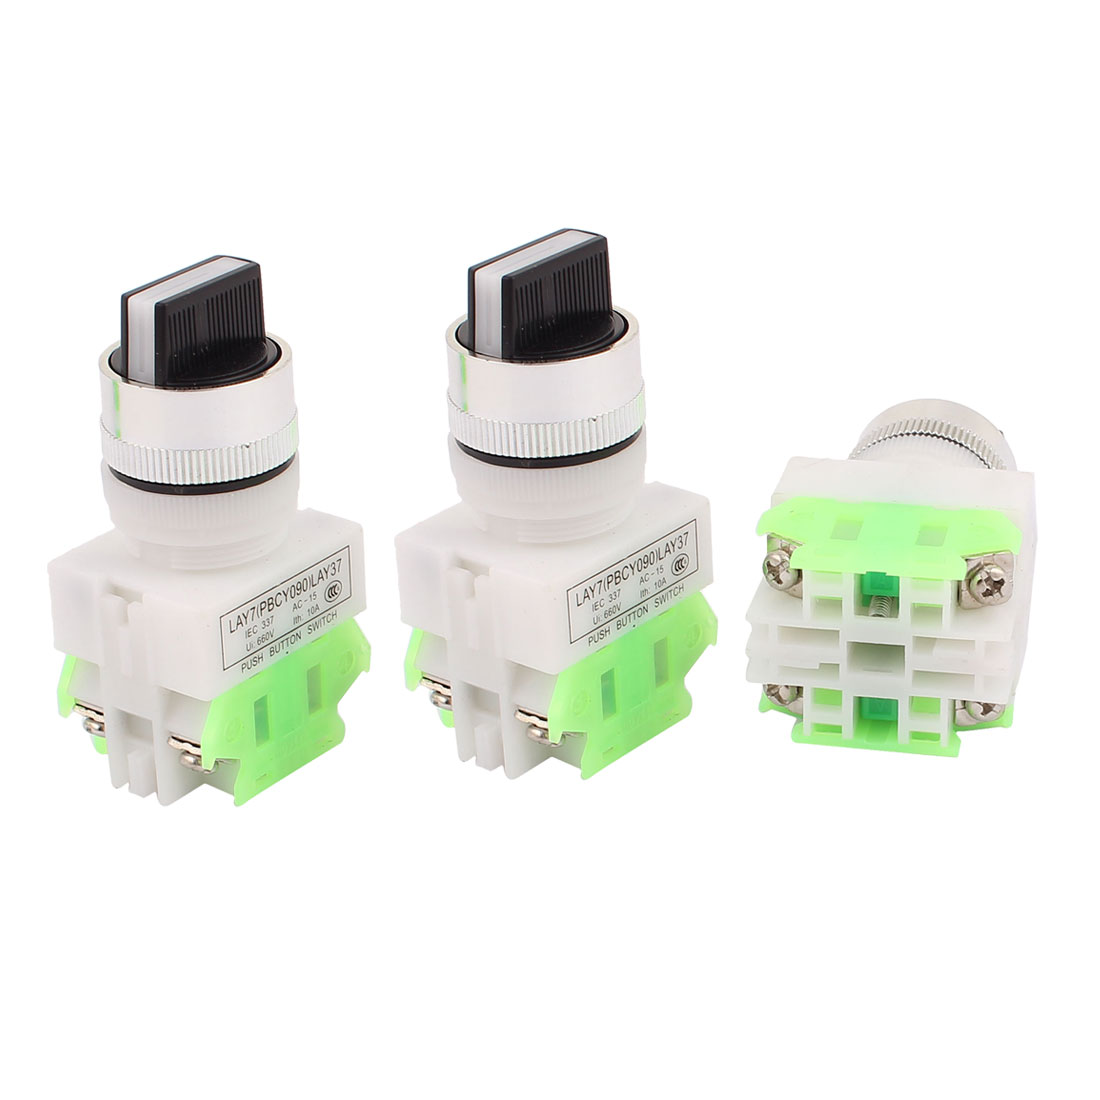 AC 660V 10A NO/NC/NO DPST 3 Position Latching Selector Rotary Switch 3PCS